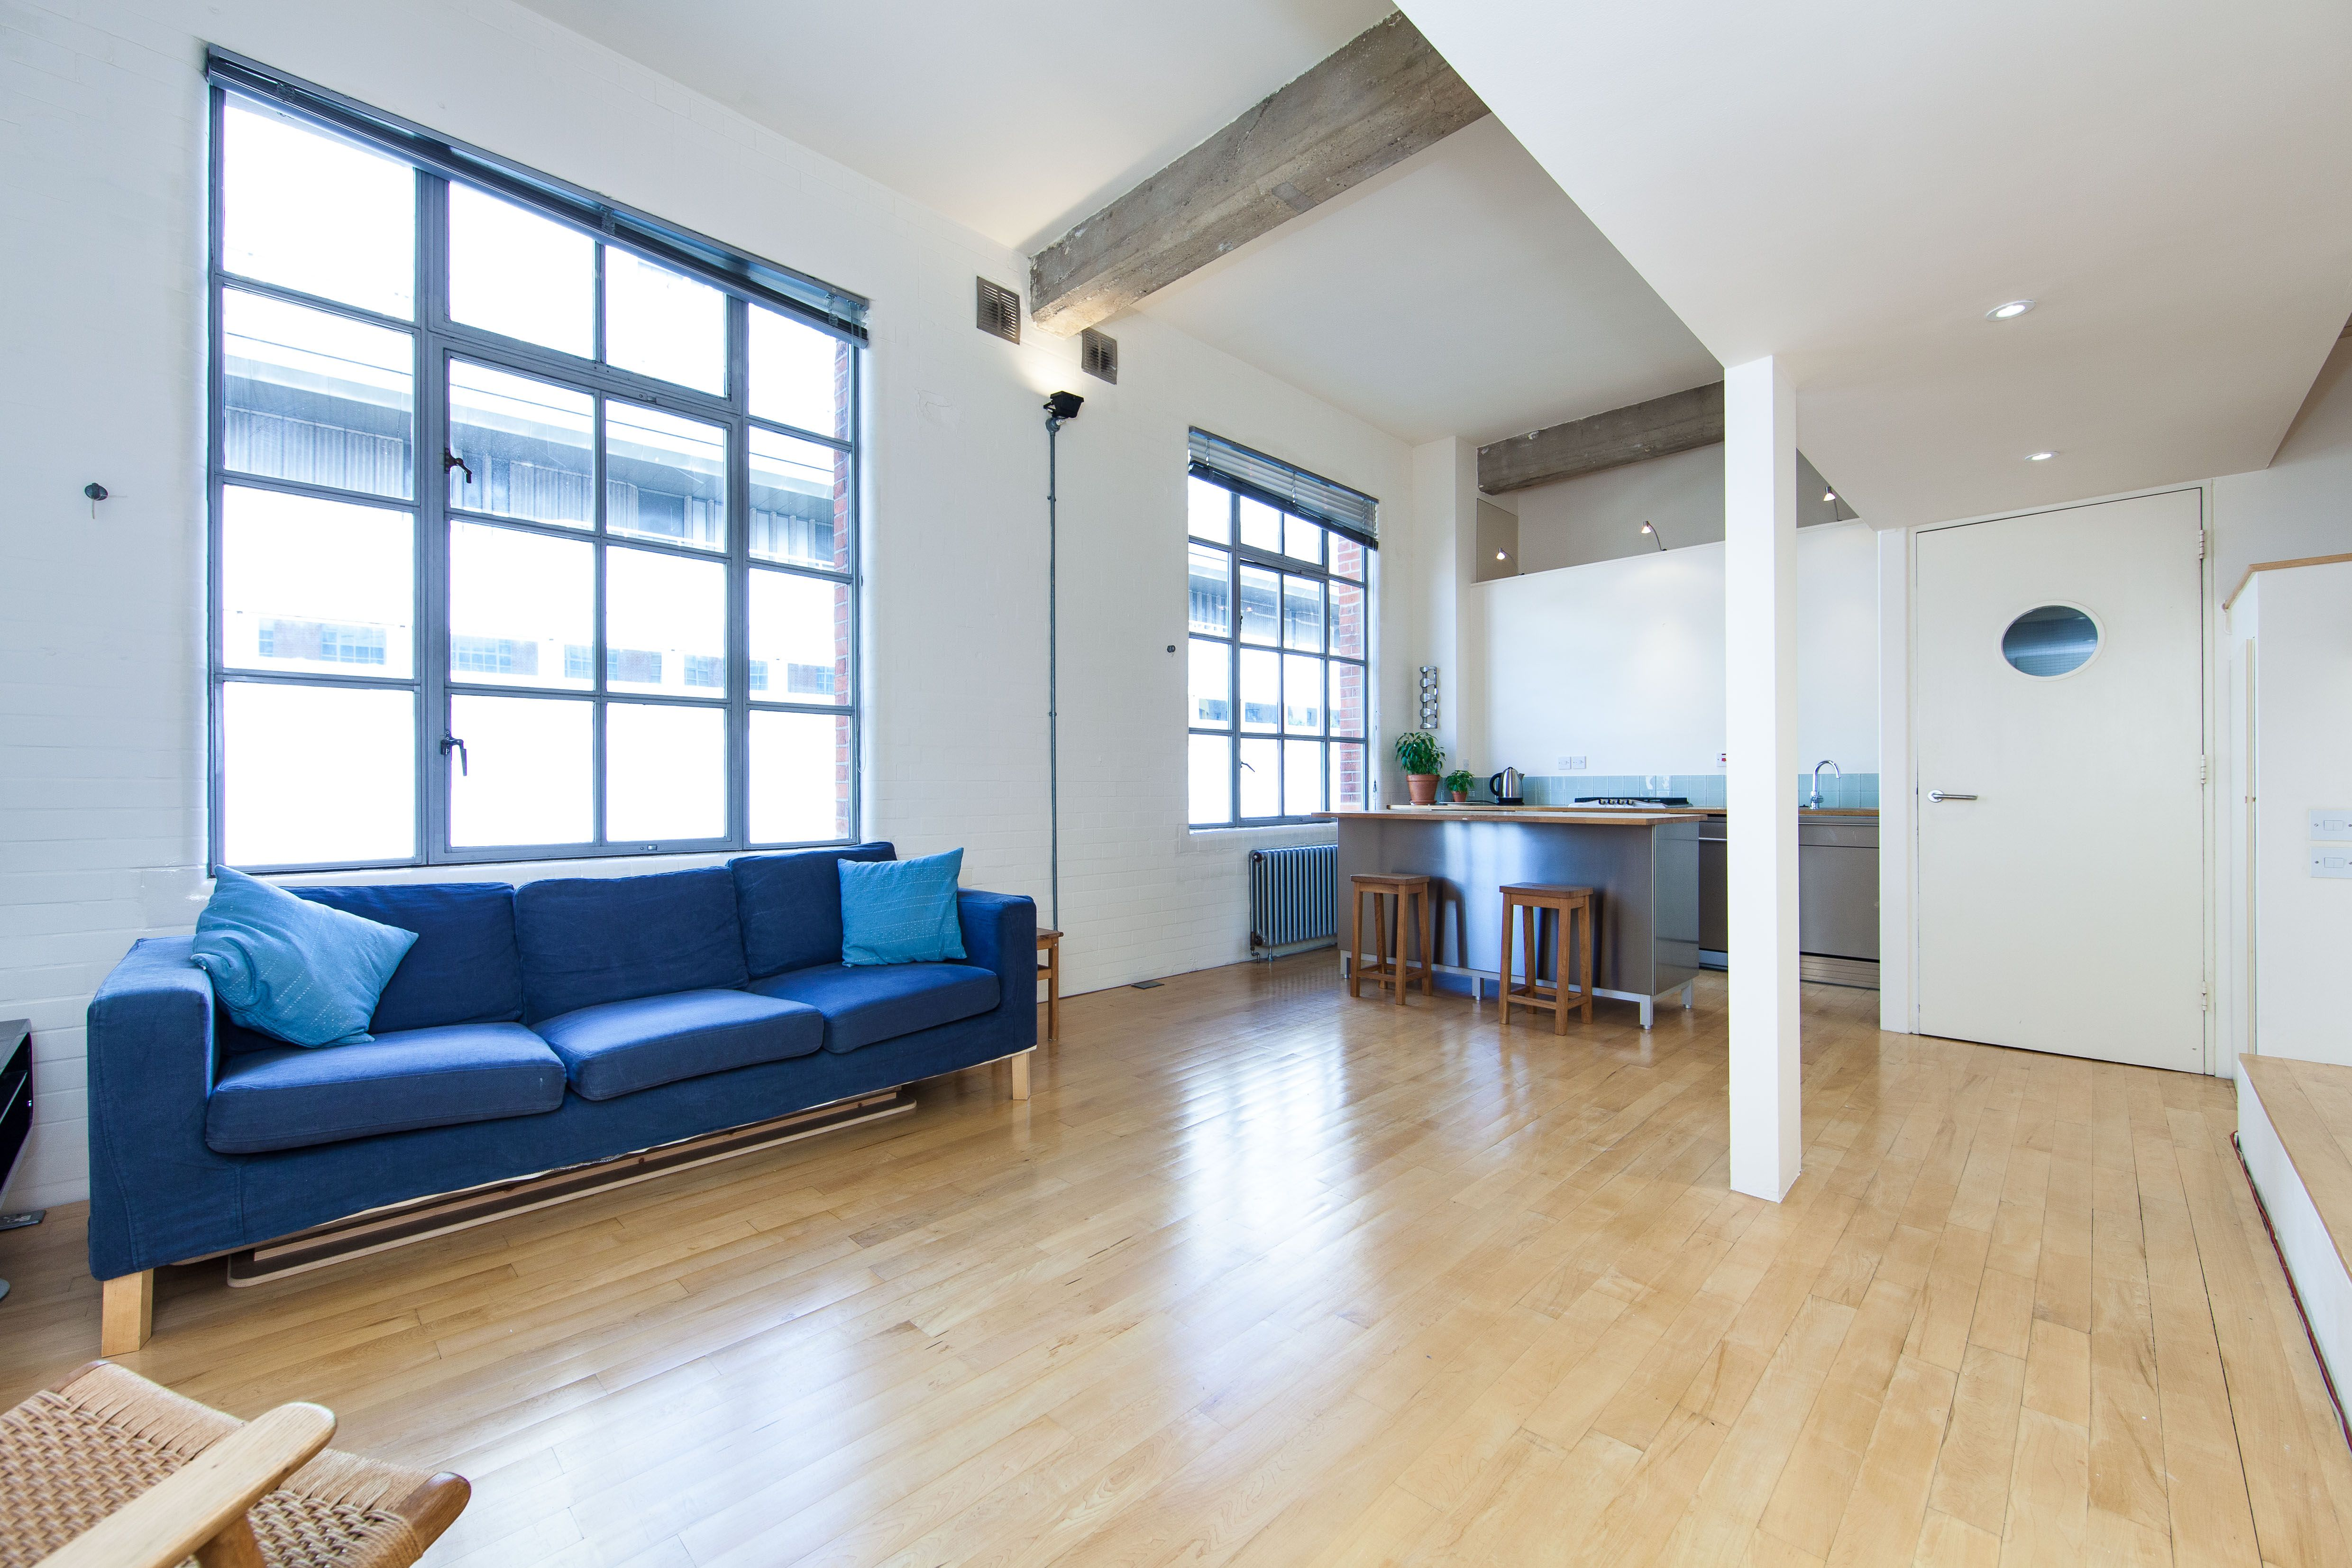 A large one bedroom loft on the